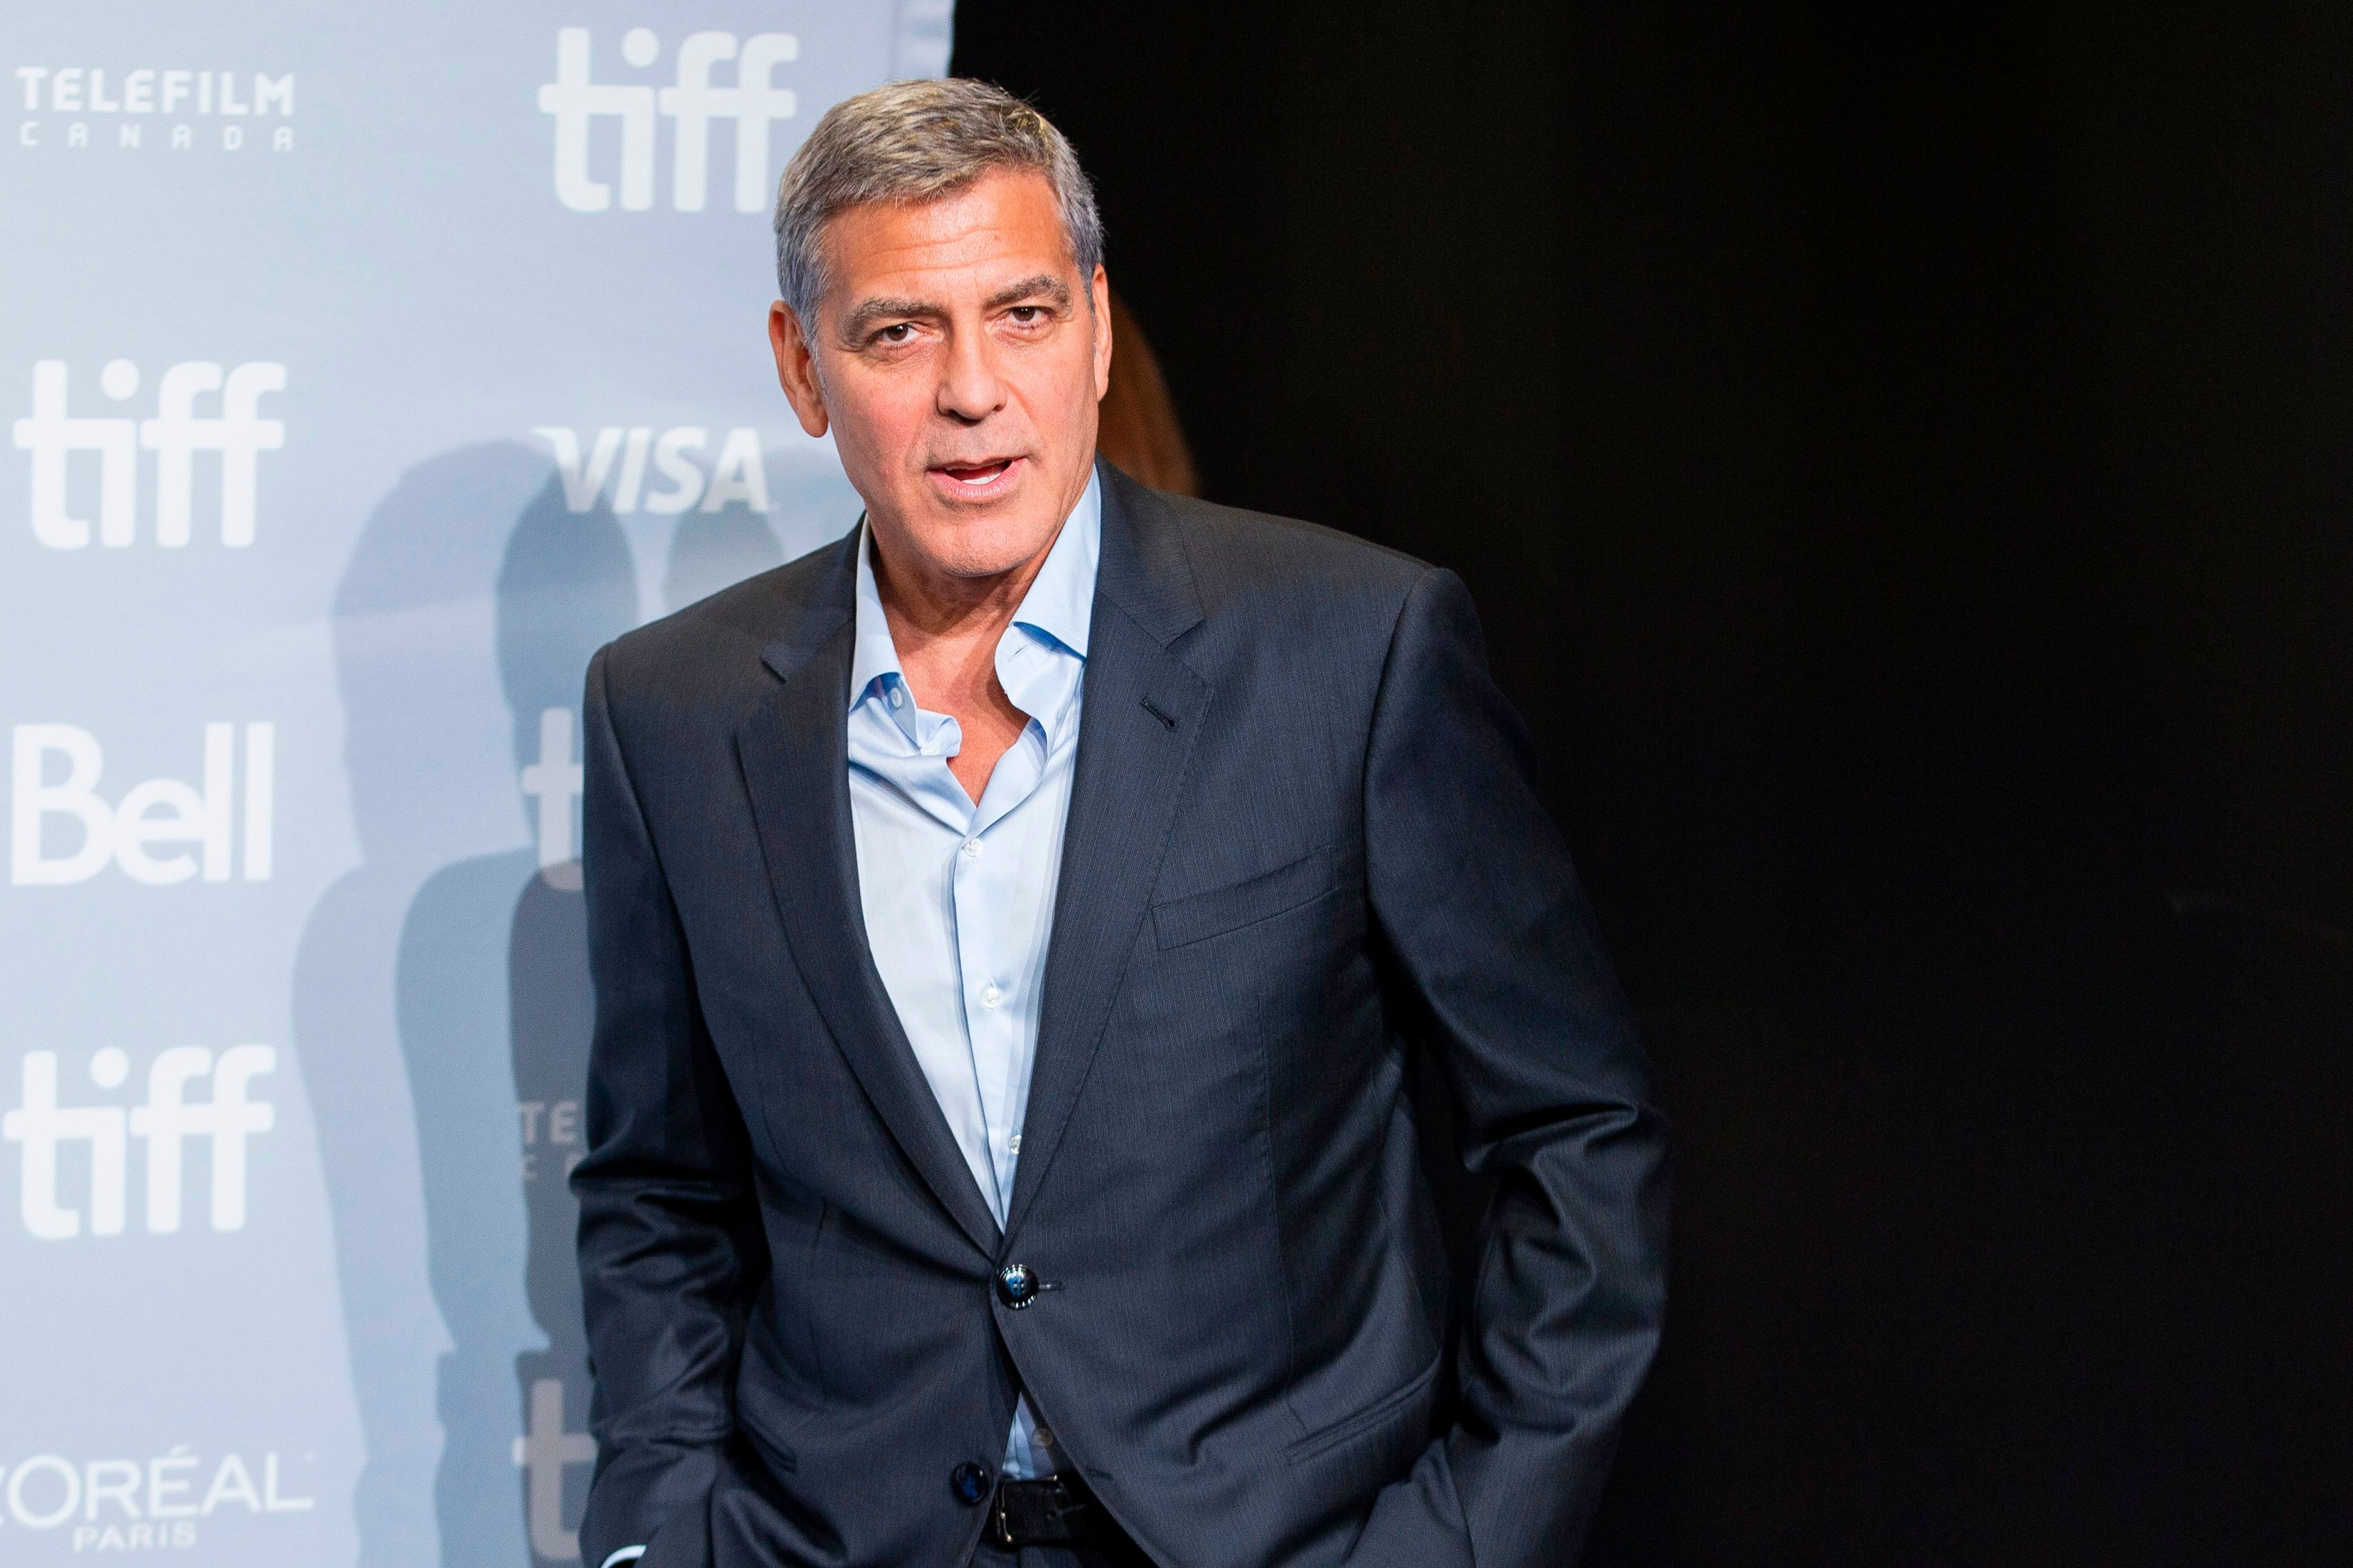 George Clooney: 'I cry four times a day because I'm so tired'